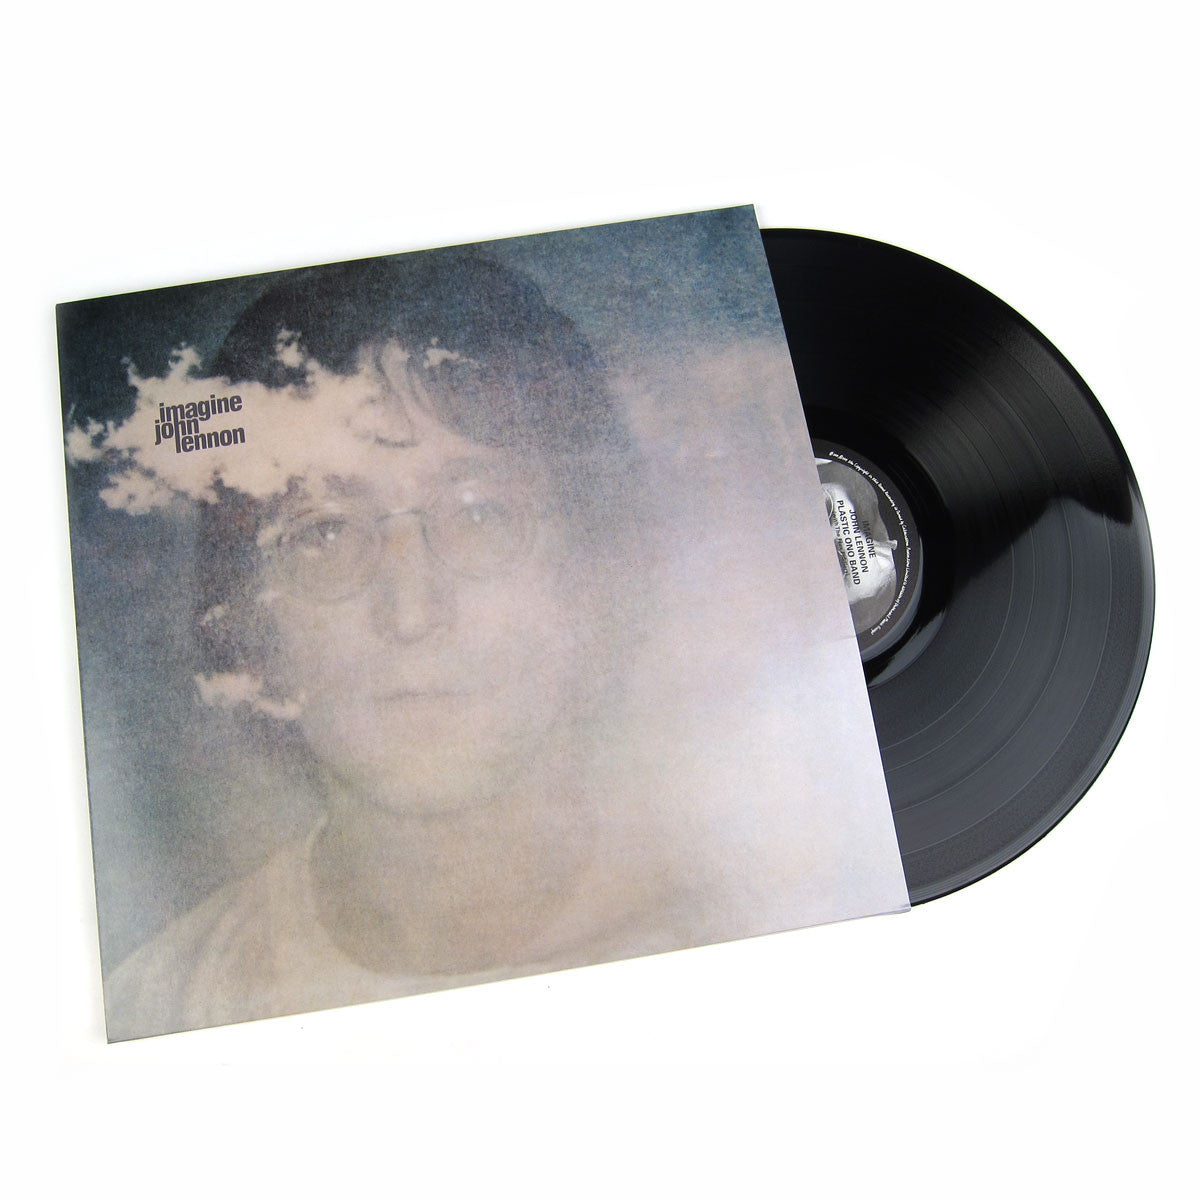 John Lennon: Imagine (180g) Vinyl LP